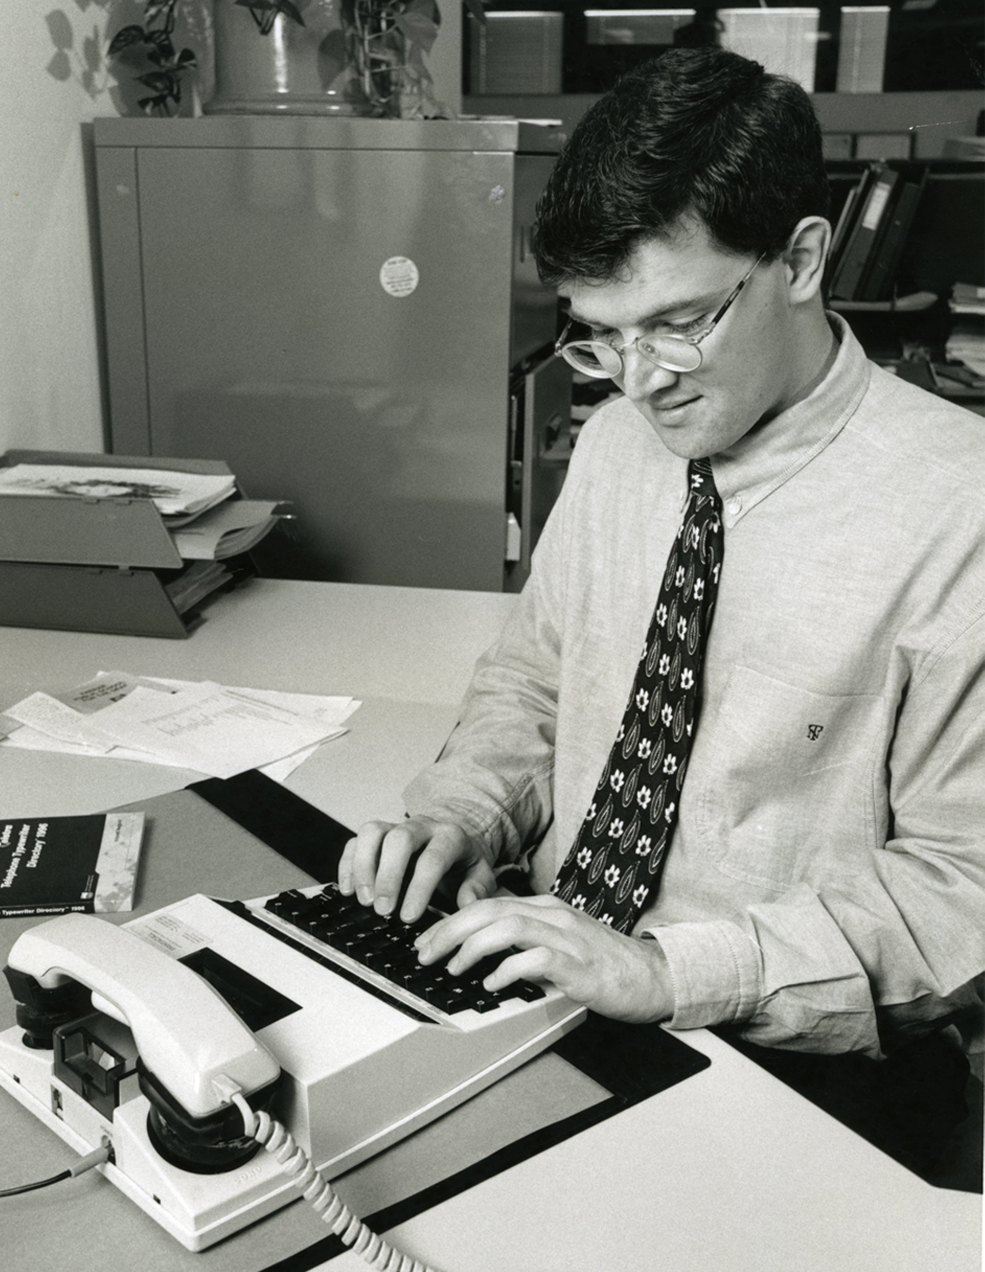 Stephen Nicholson using a TTY, 1990s